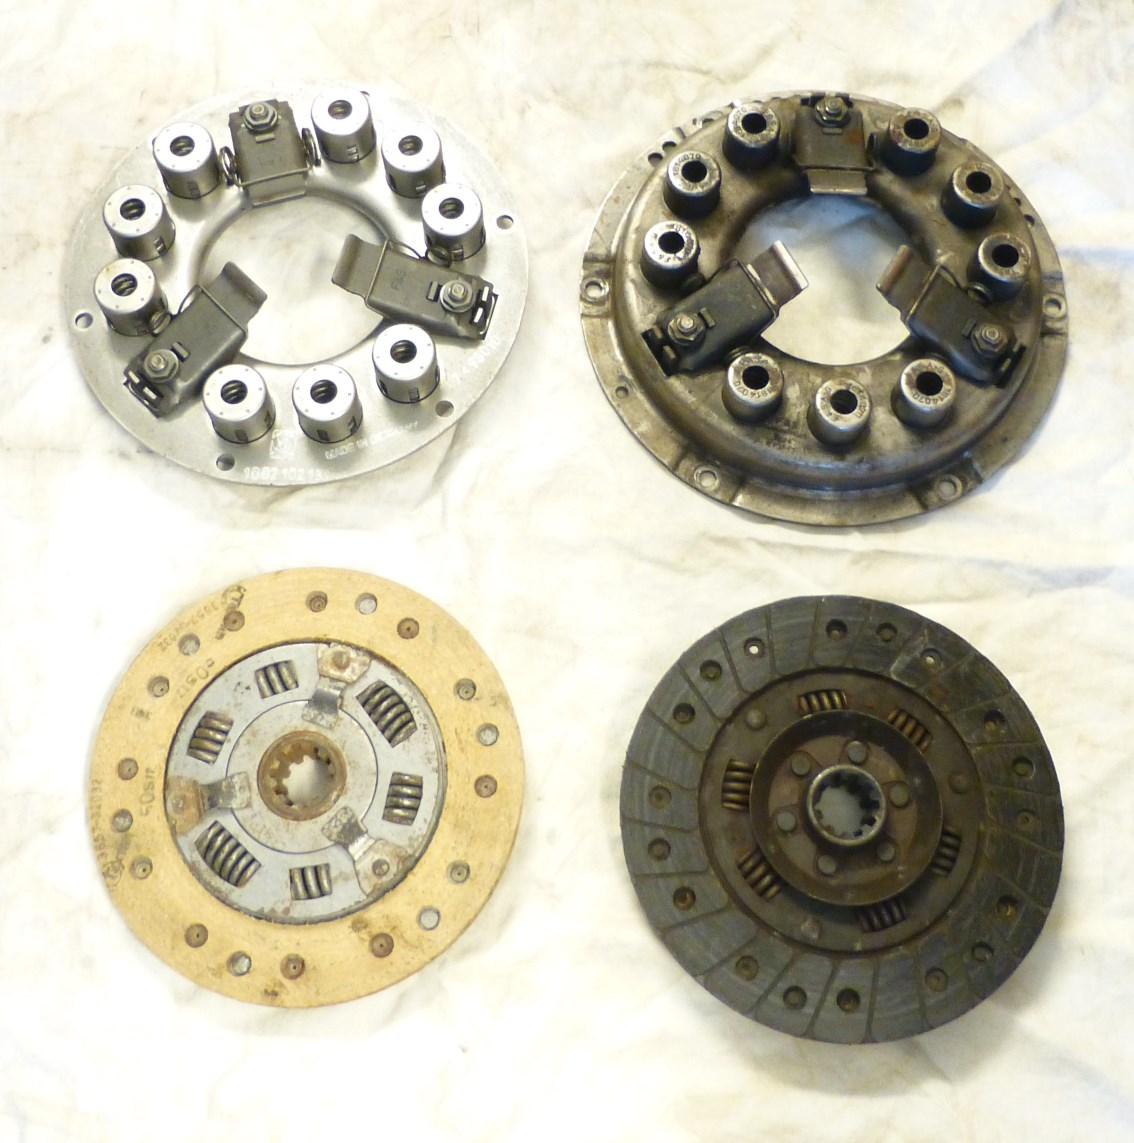 The two versions of the Mercedes Ponton clutch; cylindrical centering and dowel pin centering